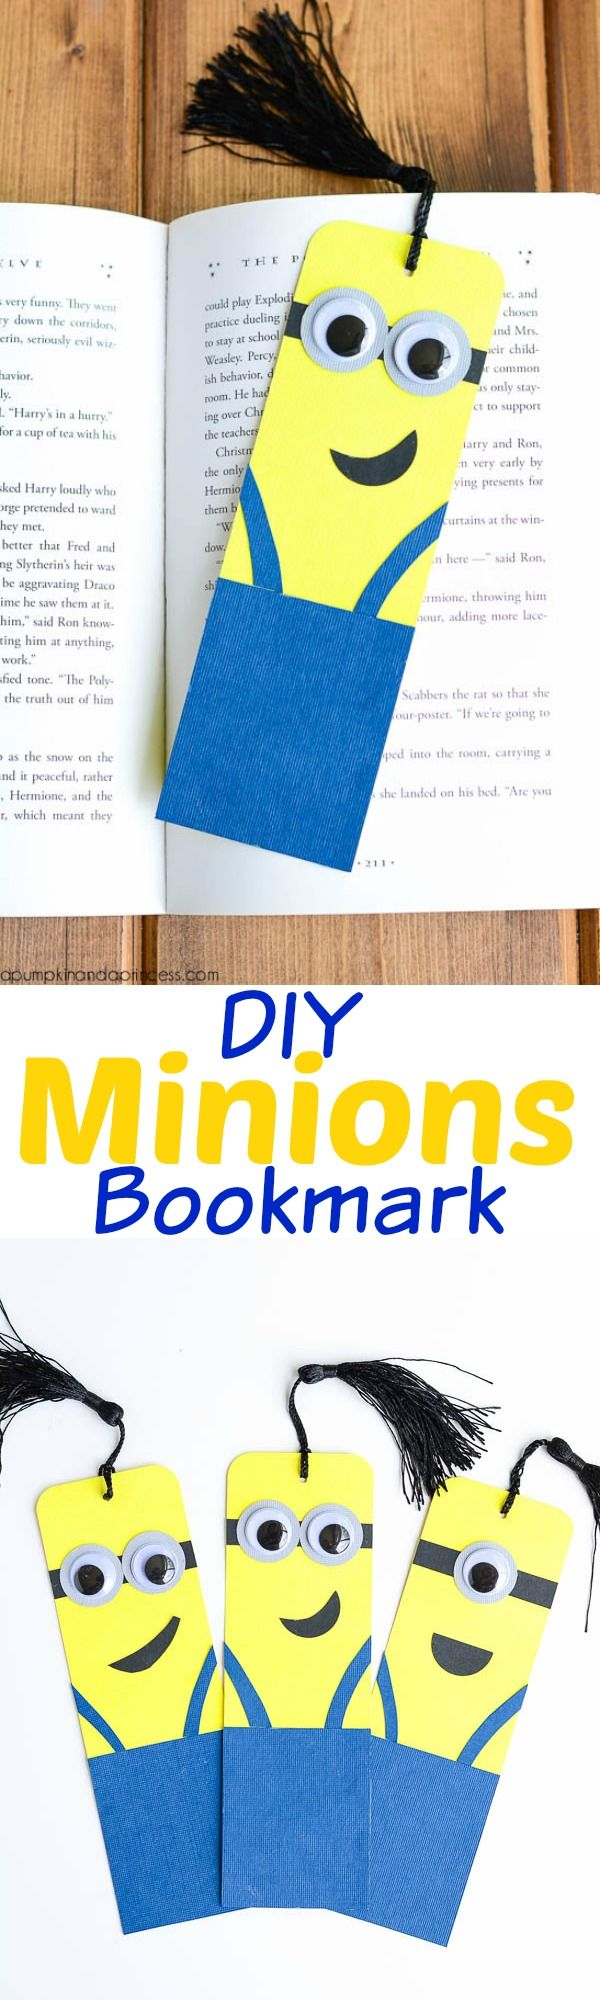 Punto de lectura de los minion - DIY Minion Bookmarks - A Pumpkin And A Princess